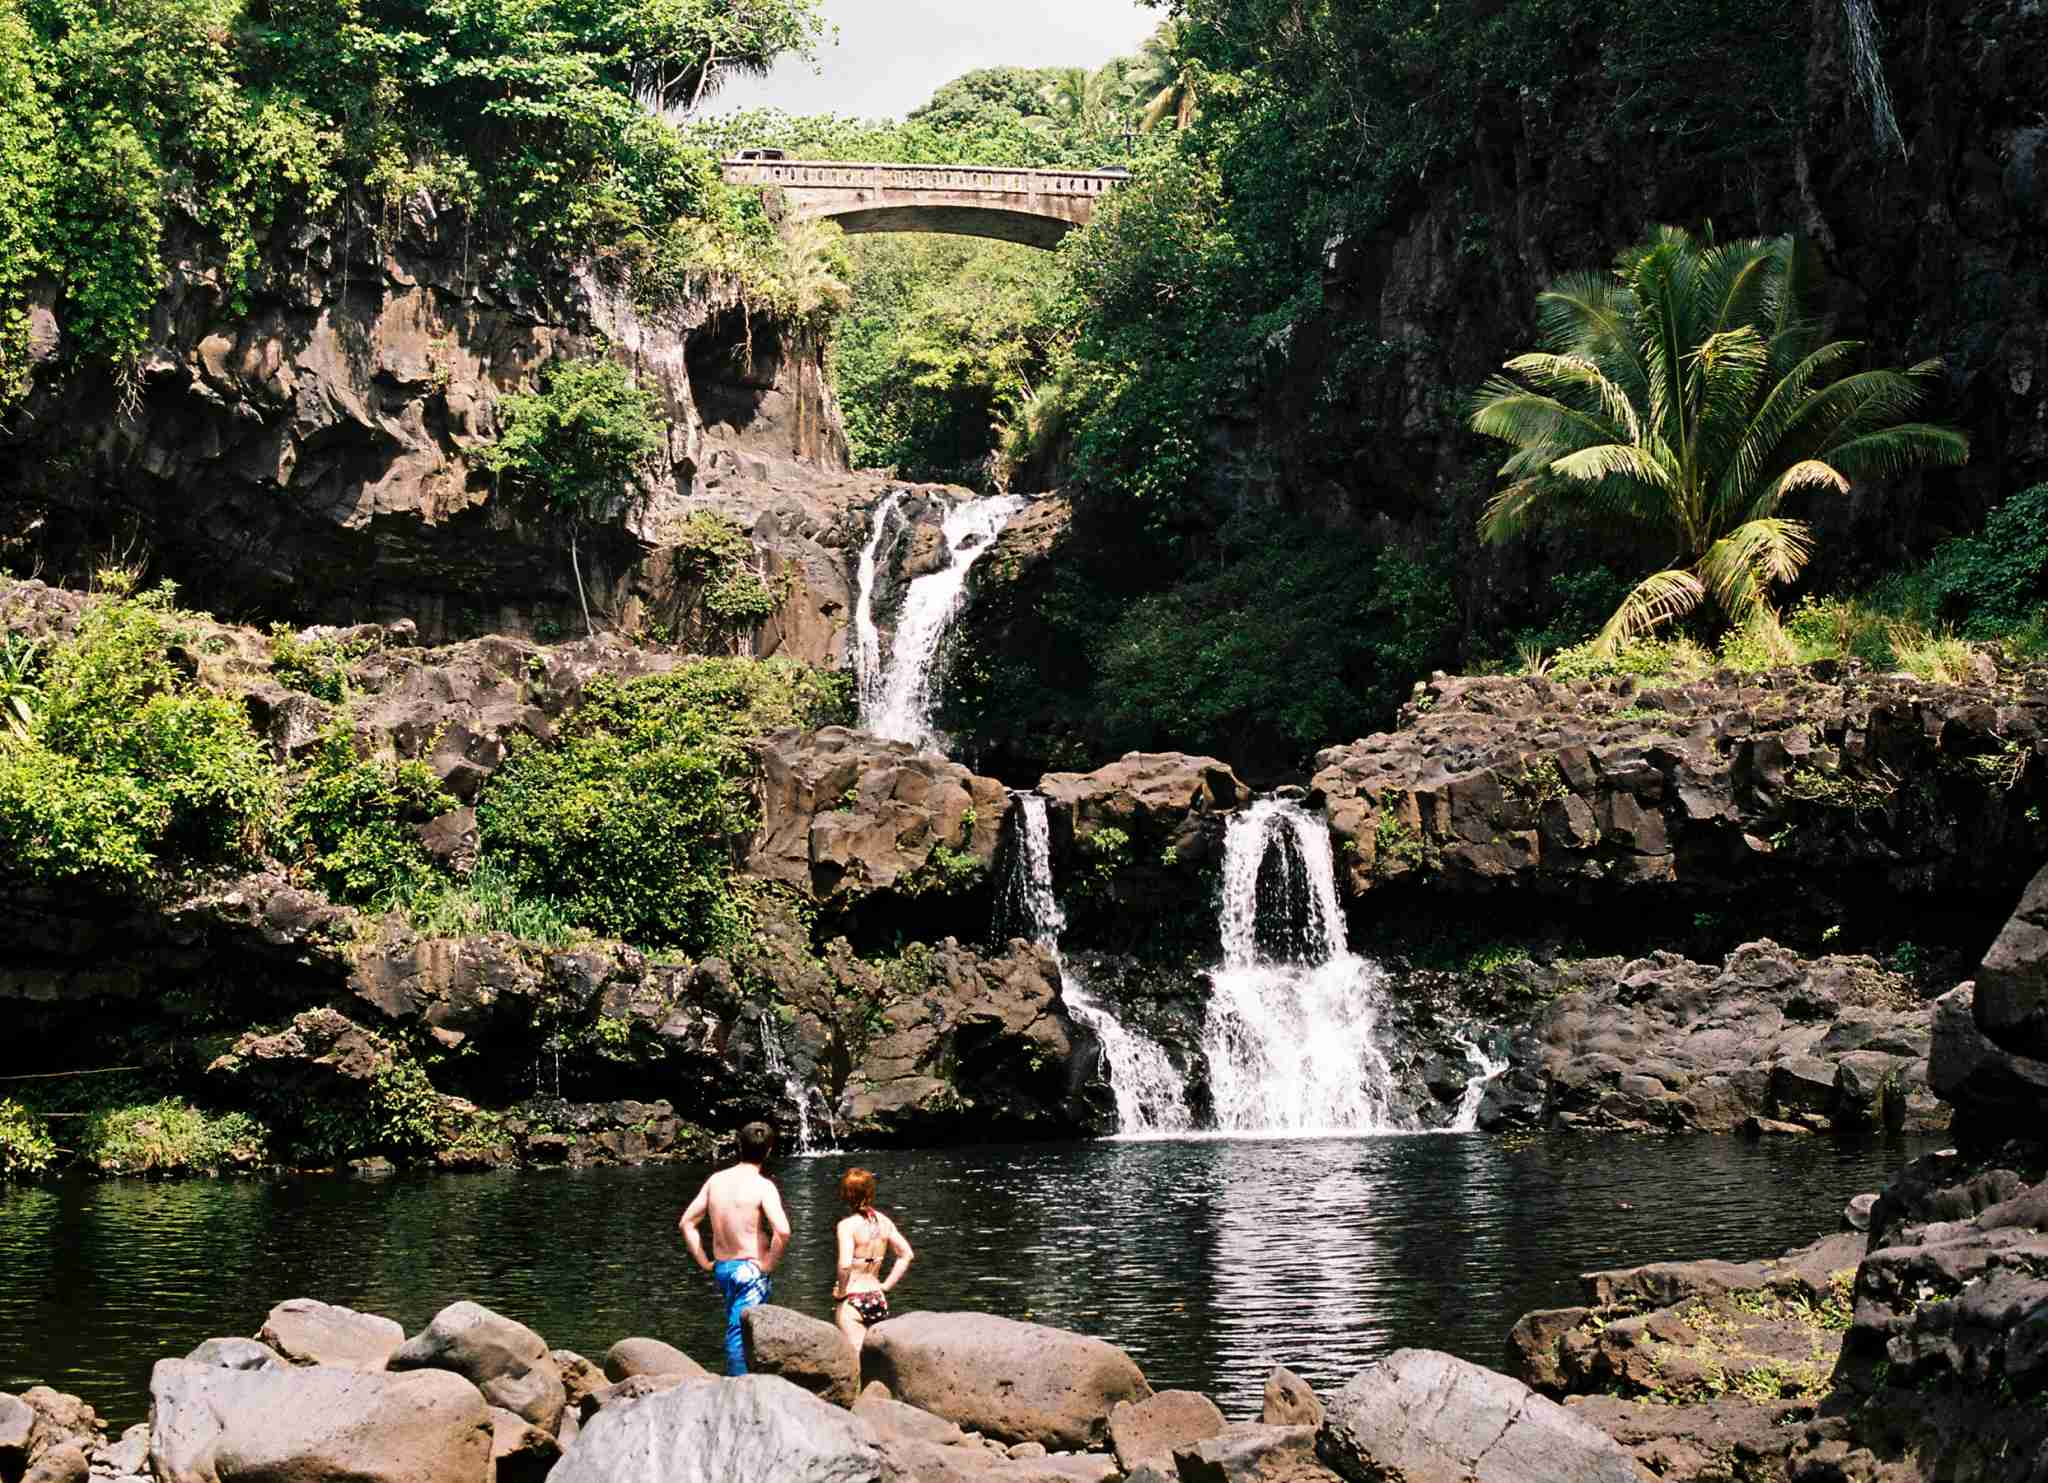 Just one of the waterfalls youll encounter along Mauis Road to Hana. Photo by ejs9/The Points Guy)